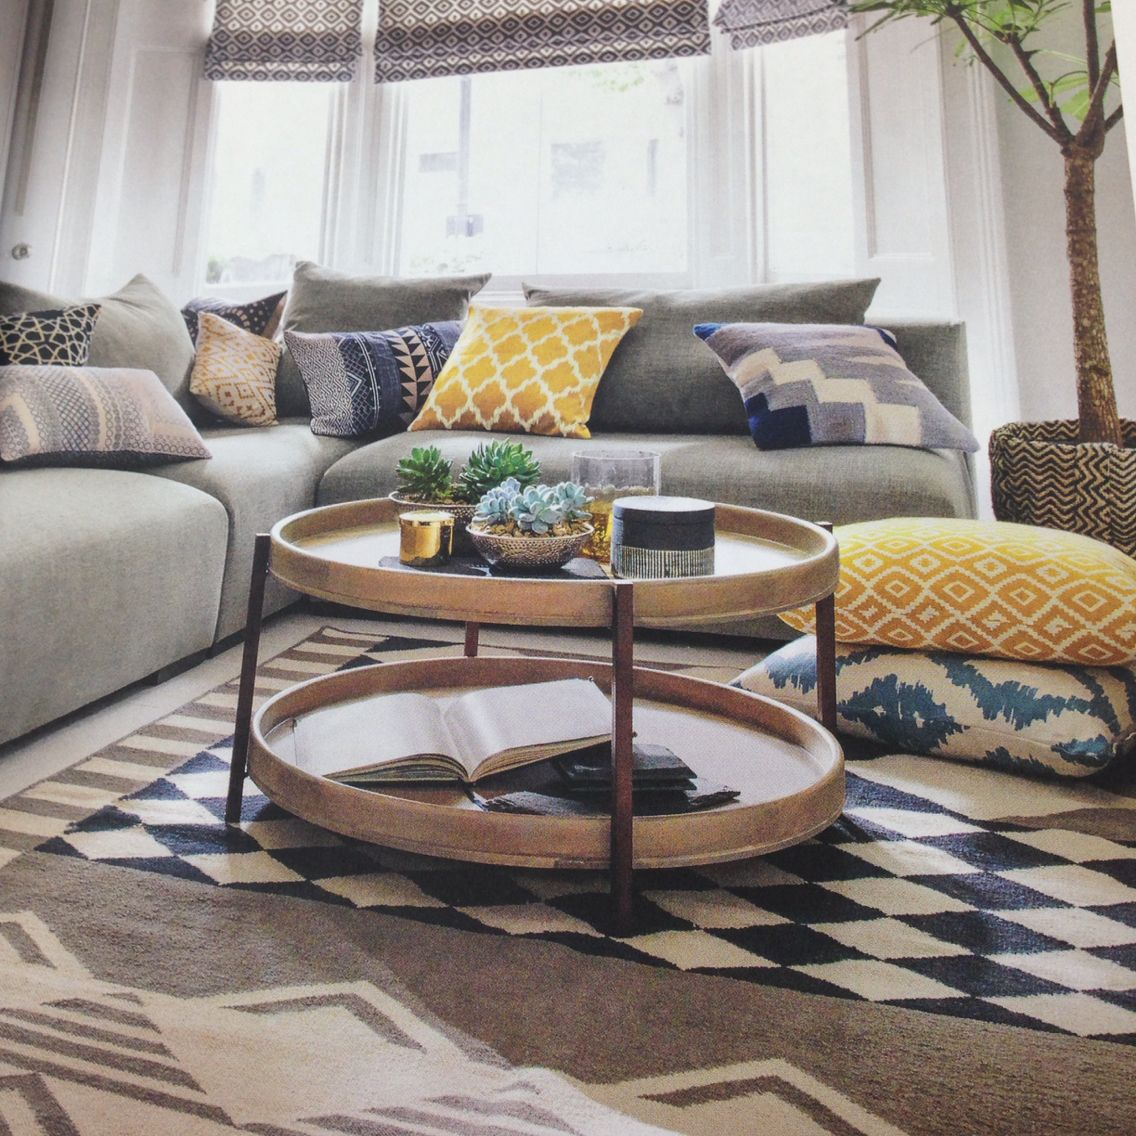 Love The Blue And Yellow Skandi Style Cushions With The Grey Sofas Colour Pop Living Room Inspiration Grey Cushions On Sofa Grey Sofa Living Room